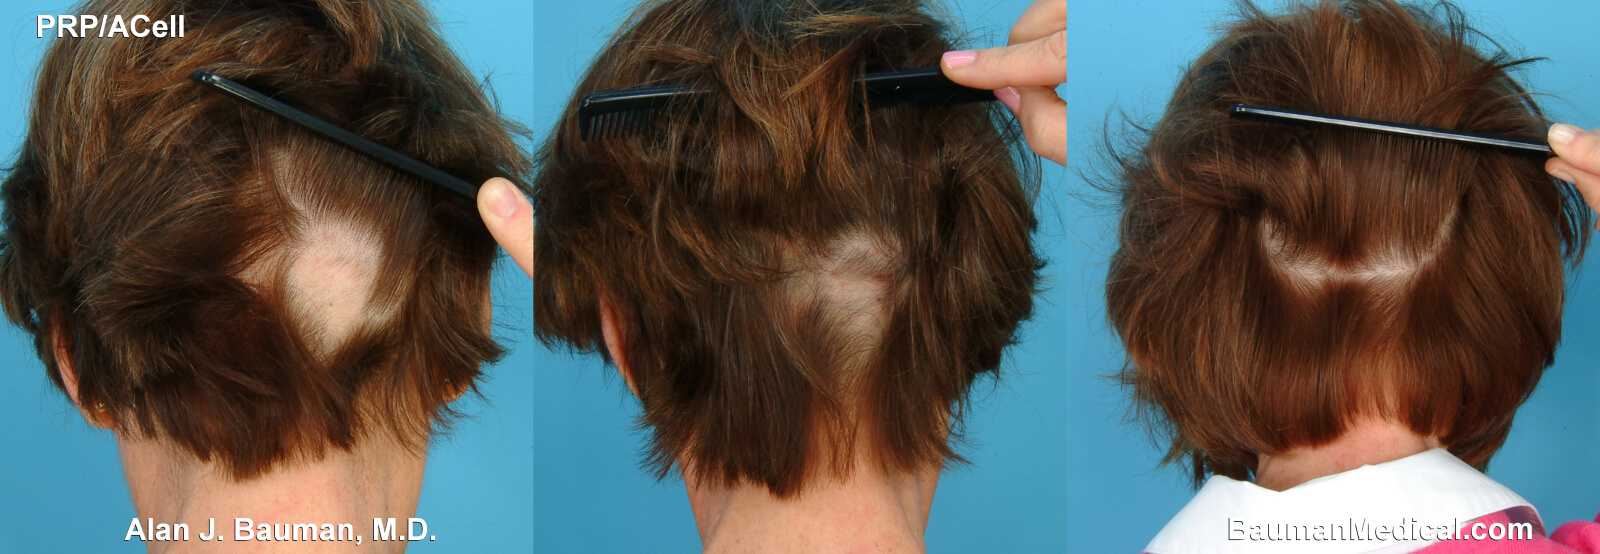 Female hair loss : causes and treatment | Life and style ...